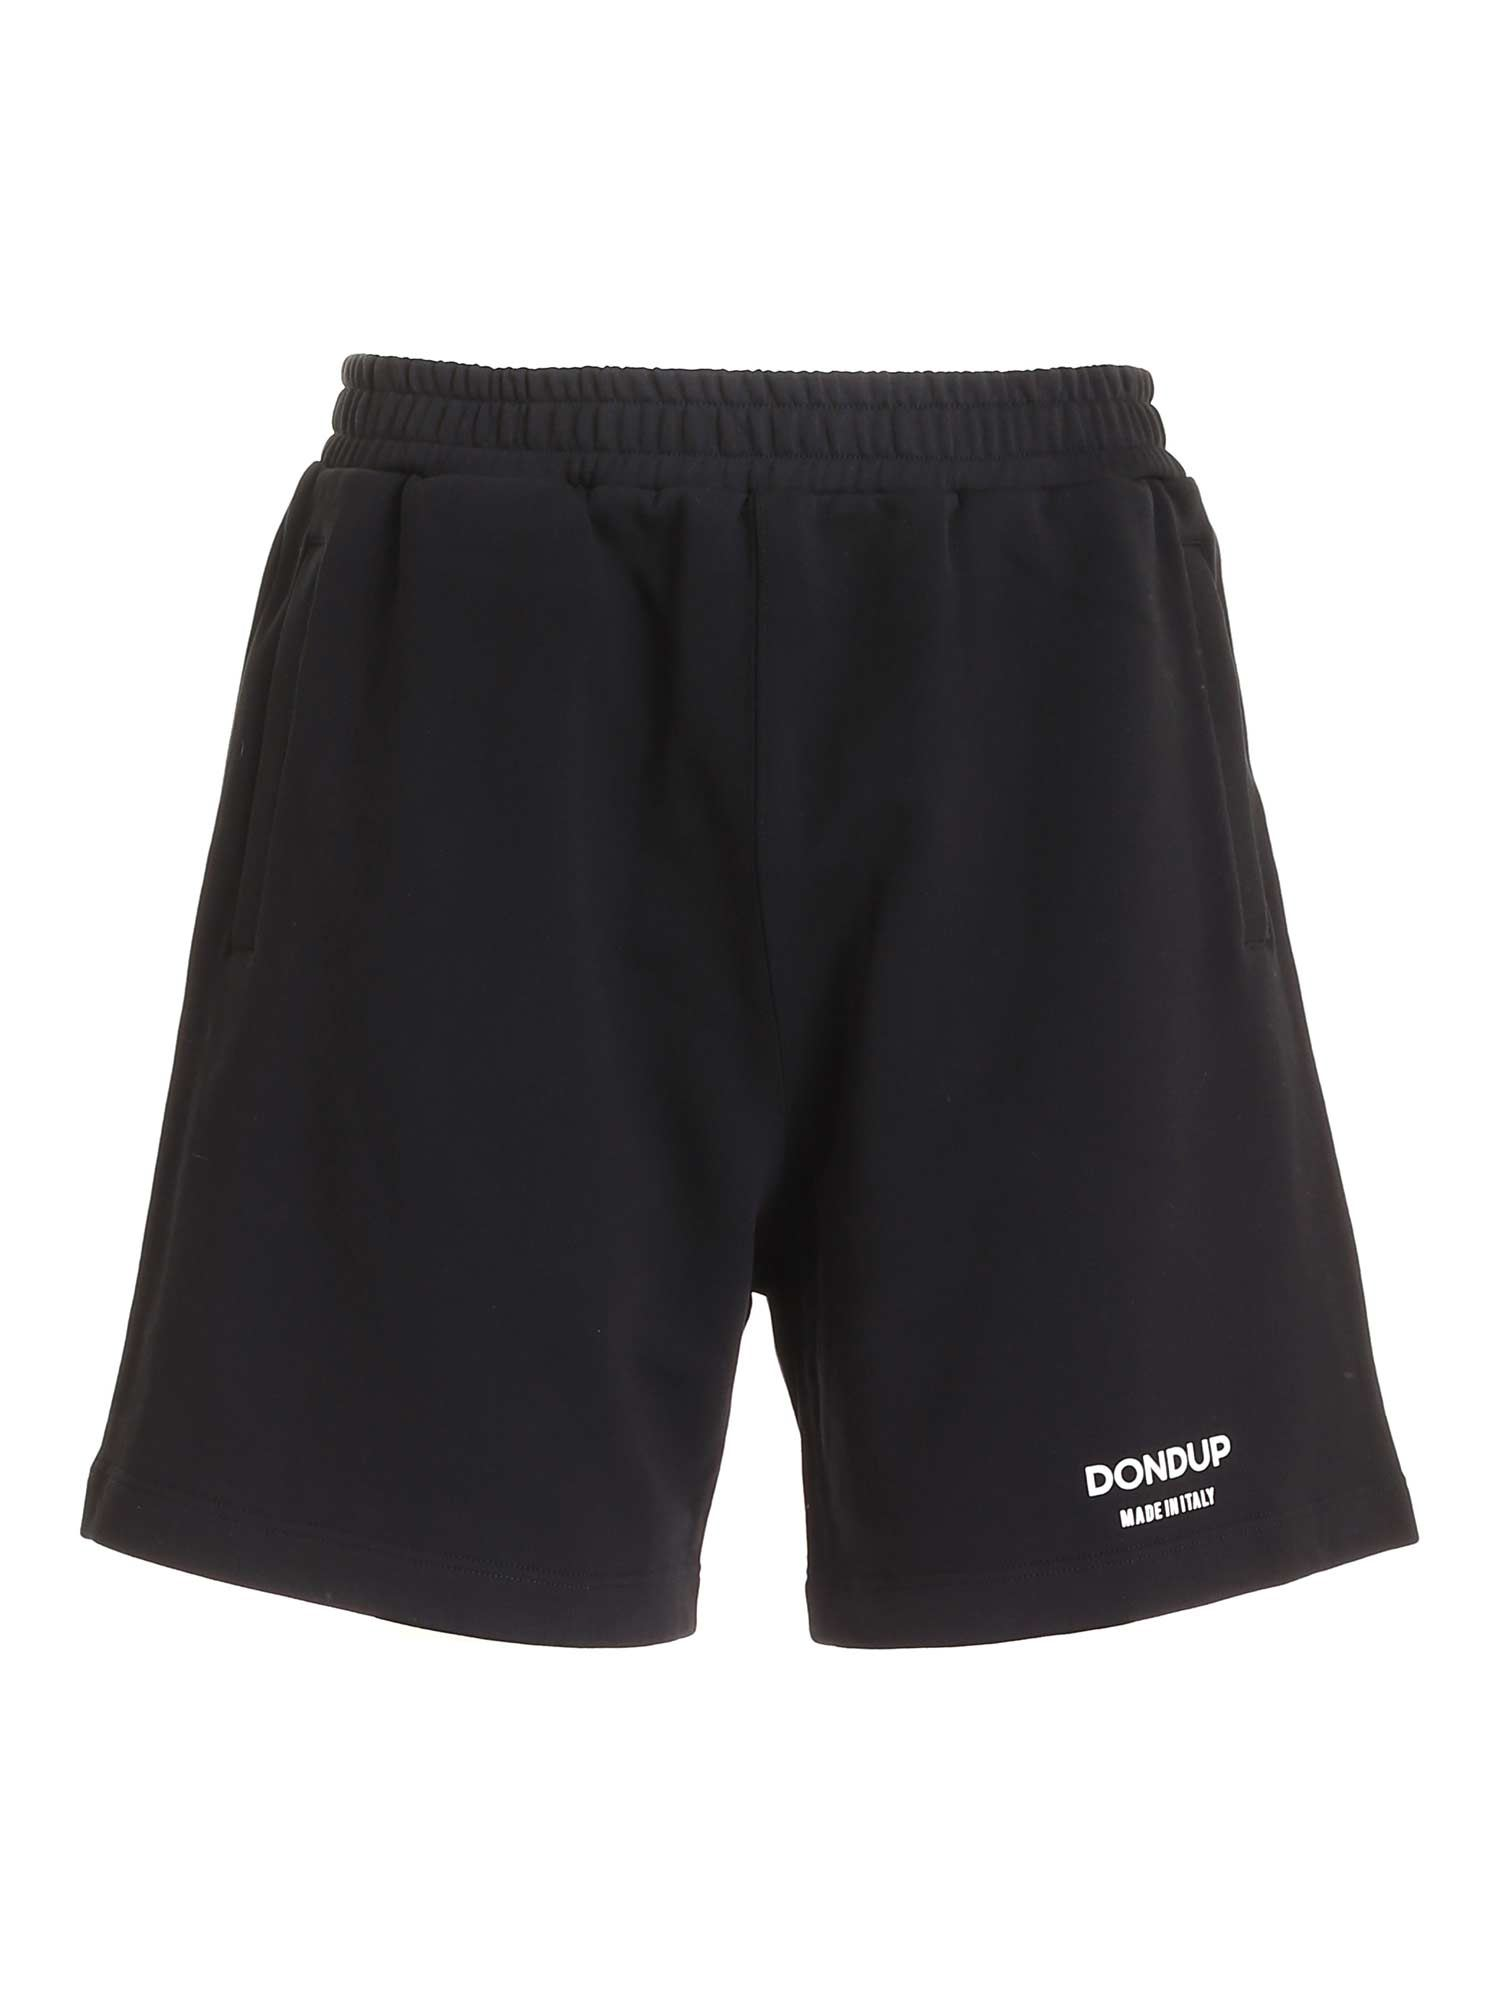 Dondup LOGO PRINT BERMUDA IN BLACK